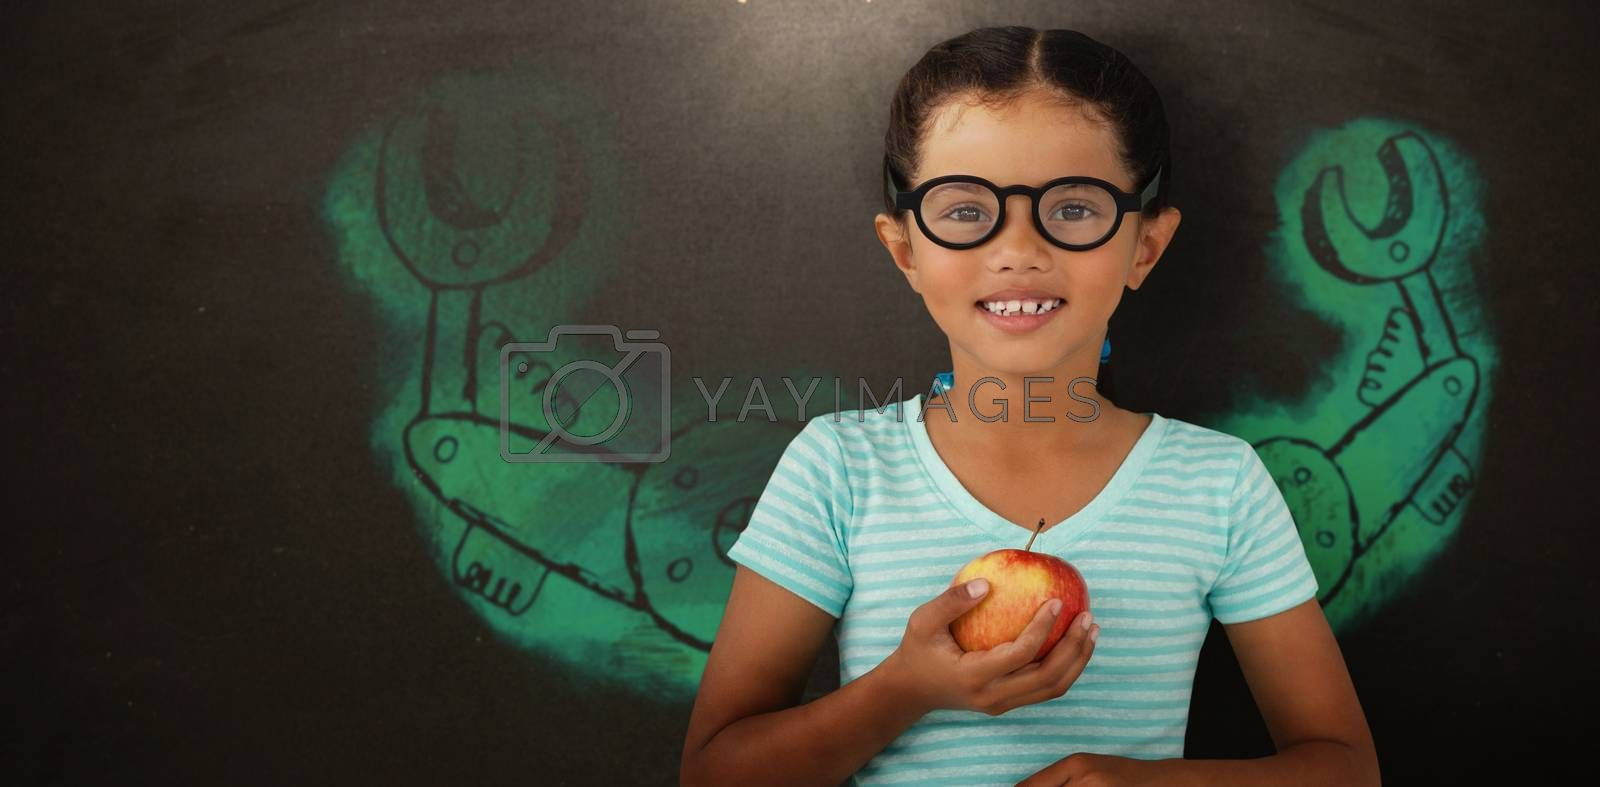 Composite image of portrait of smiling girl wearing eyeglasses holding apple by Wavebreakmedia